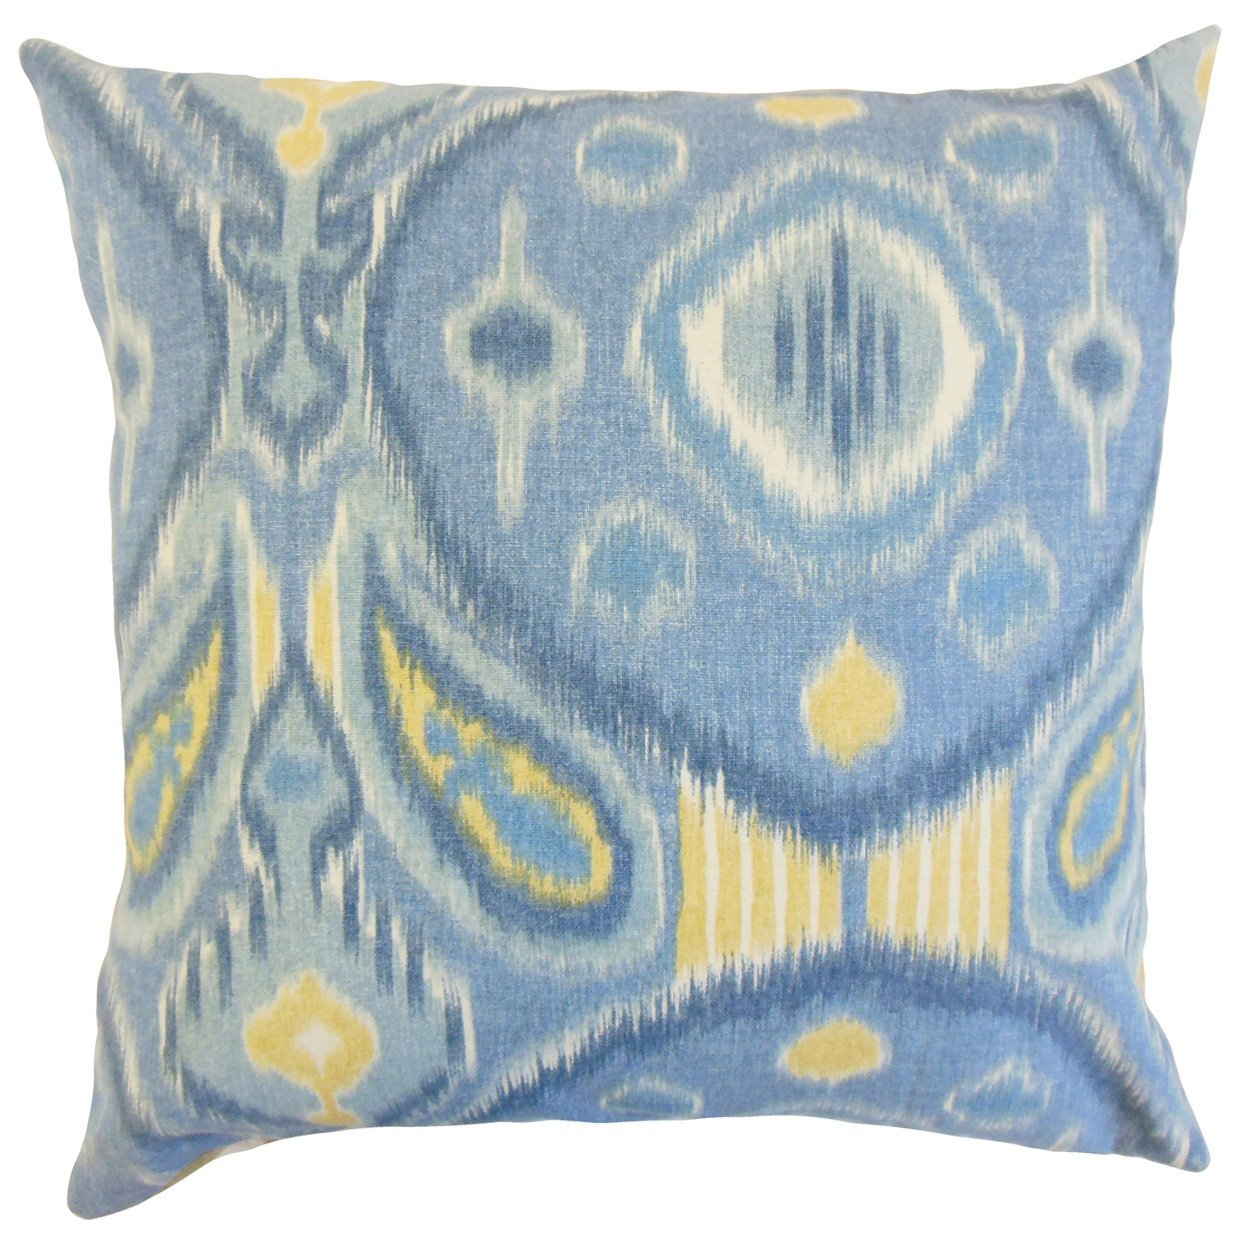 The Pillow Collection Janvier Ikat Bedding Sham Ocean King//20 x 36 KING-PT-KIMMEL-OCEAN-L100